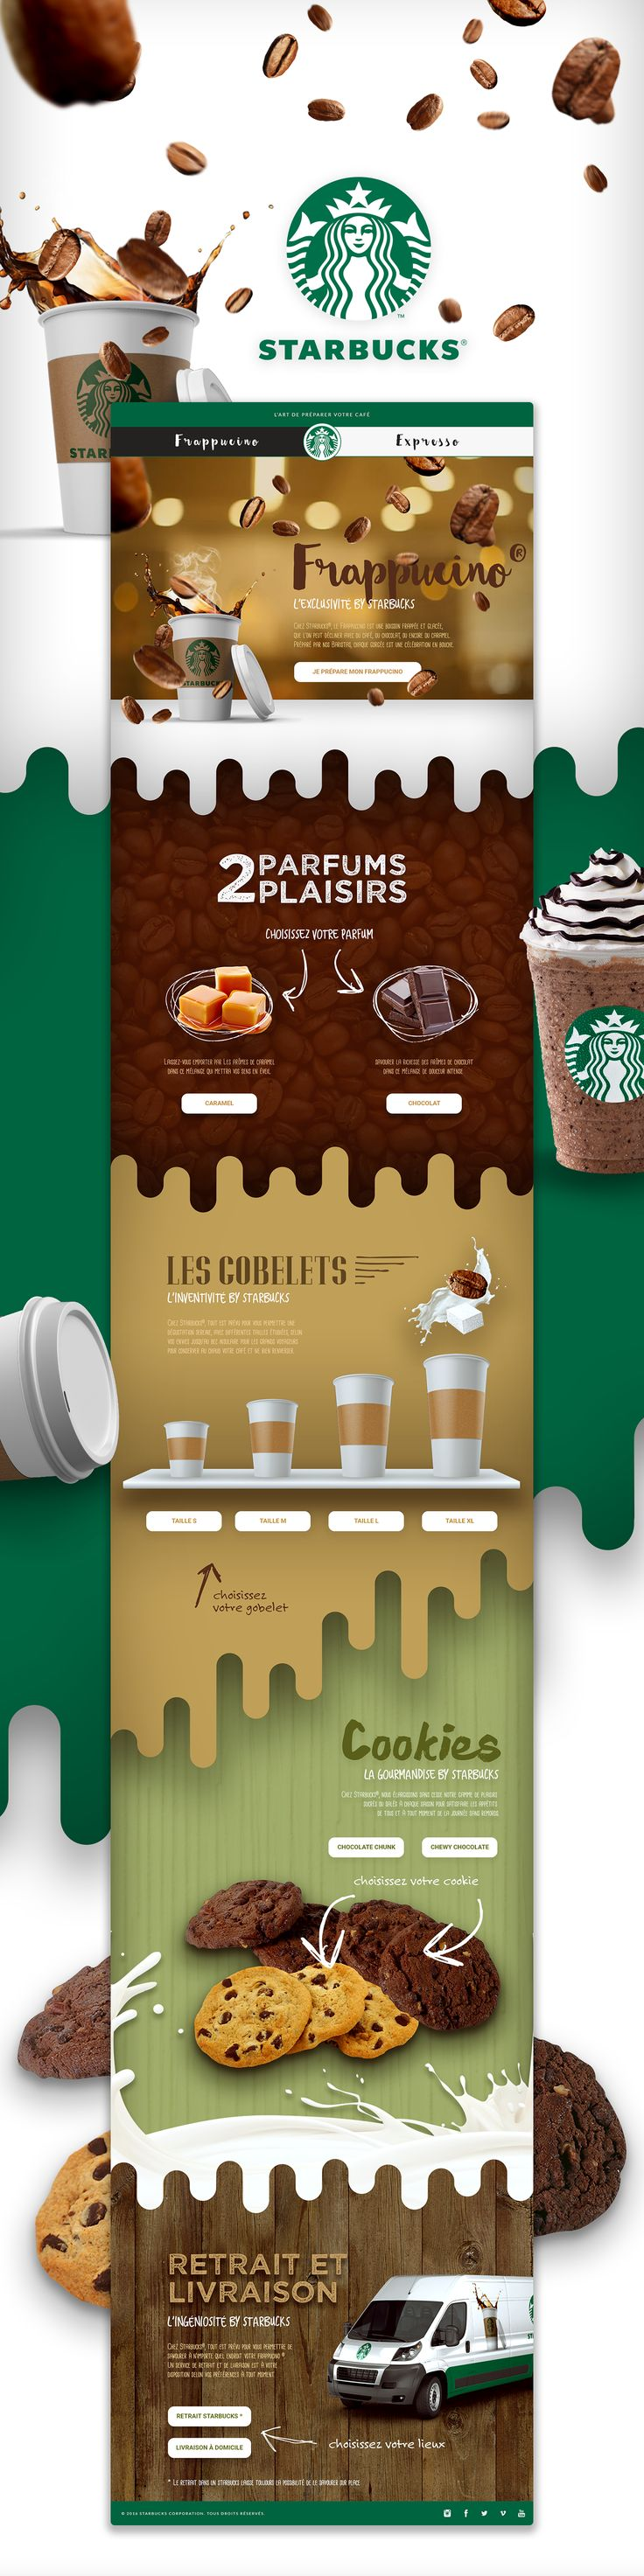 [Prototype] Starbucks® on Behance